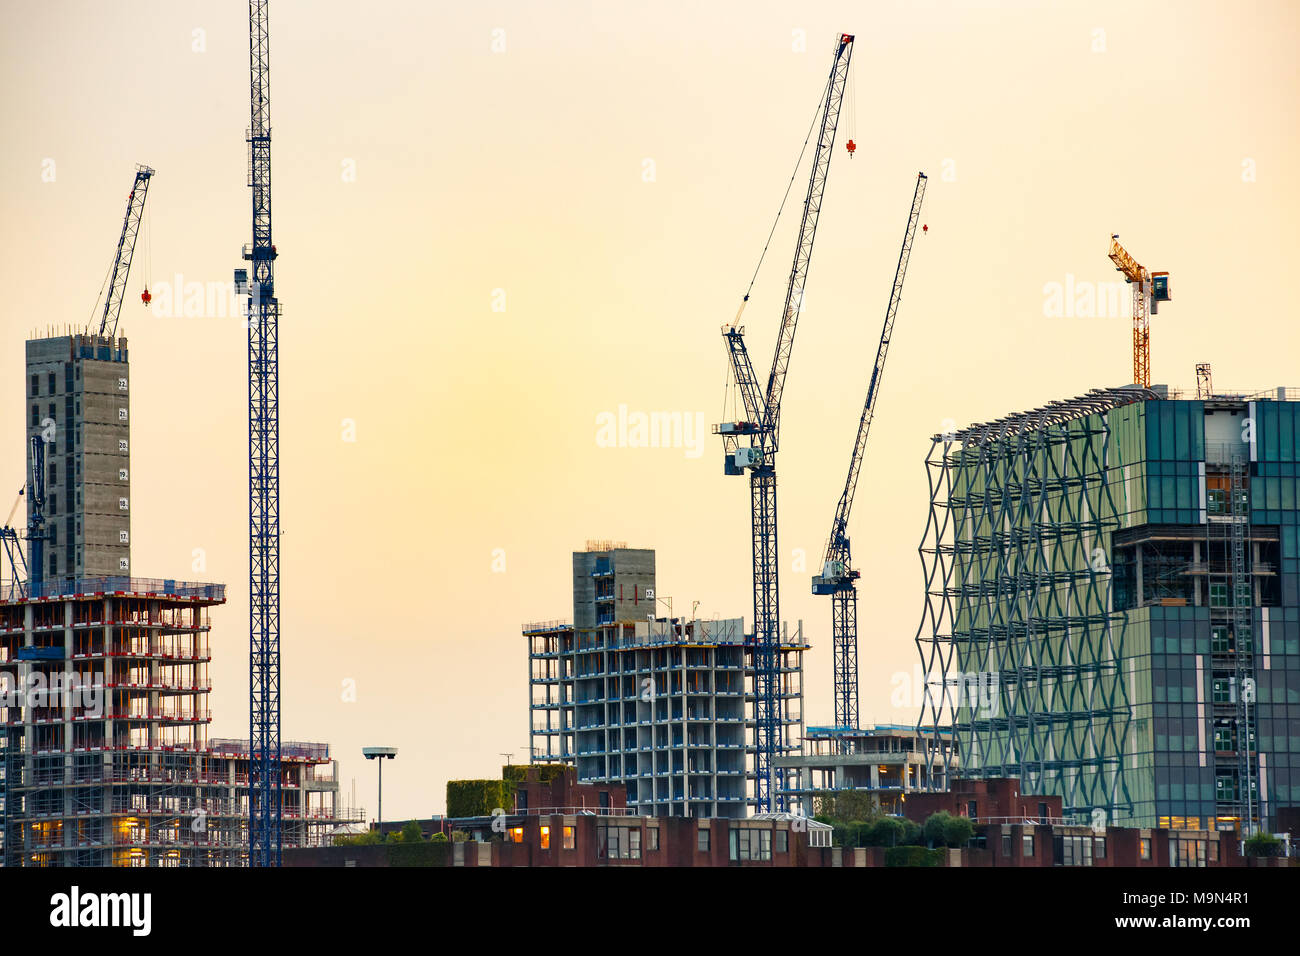 New skyscrapers under construction with tall cranes against colourful sky. Construction business and industry, urbanisation, urban sprawl real estate  - Stock Image